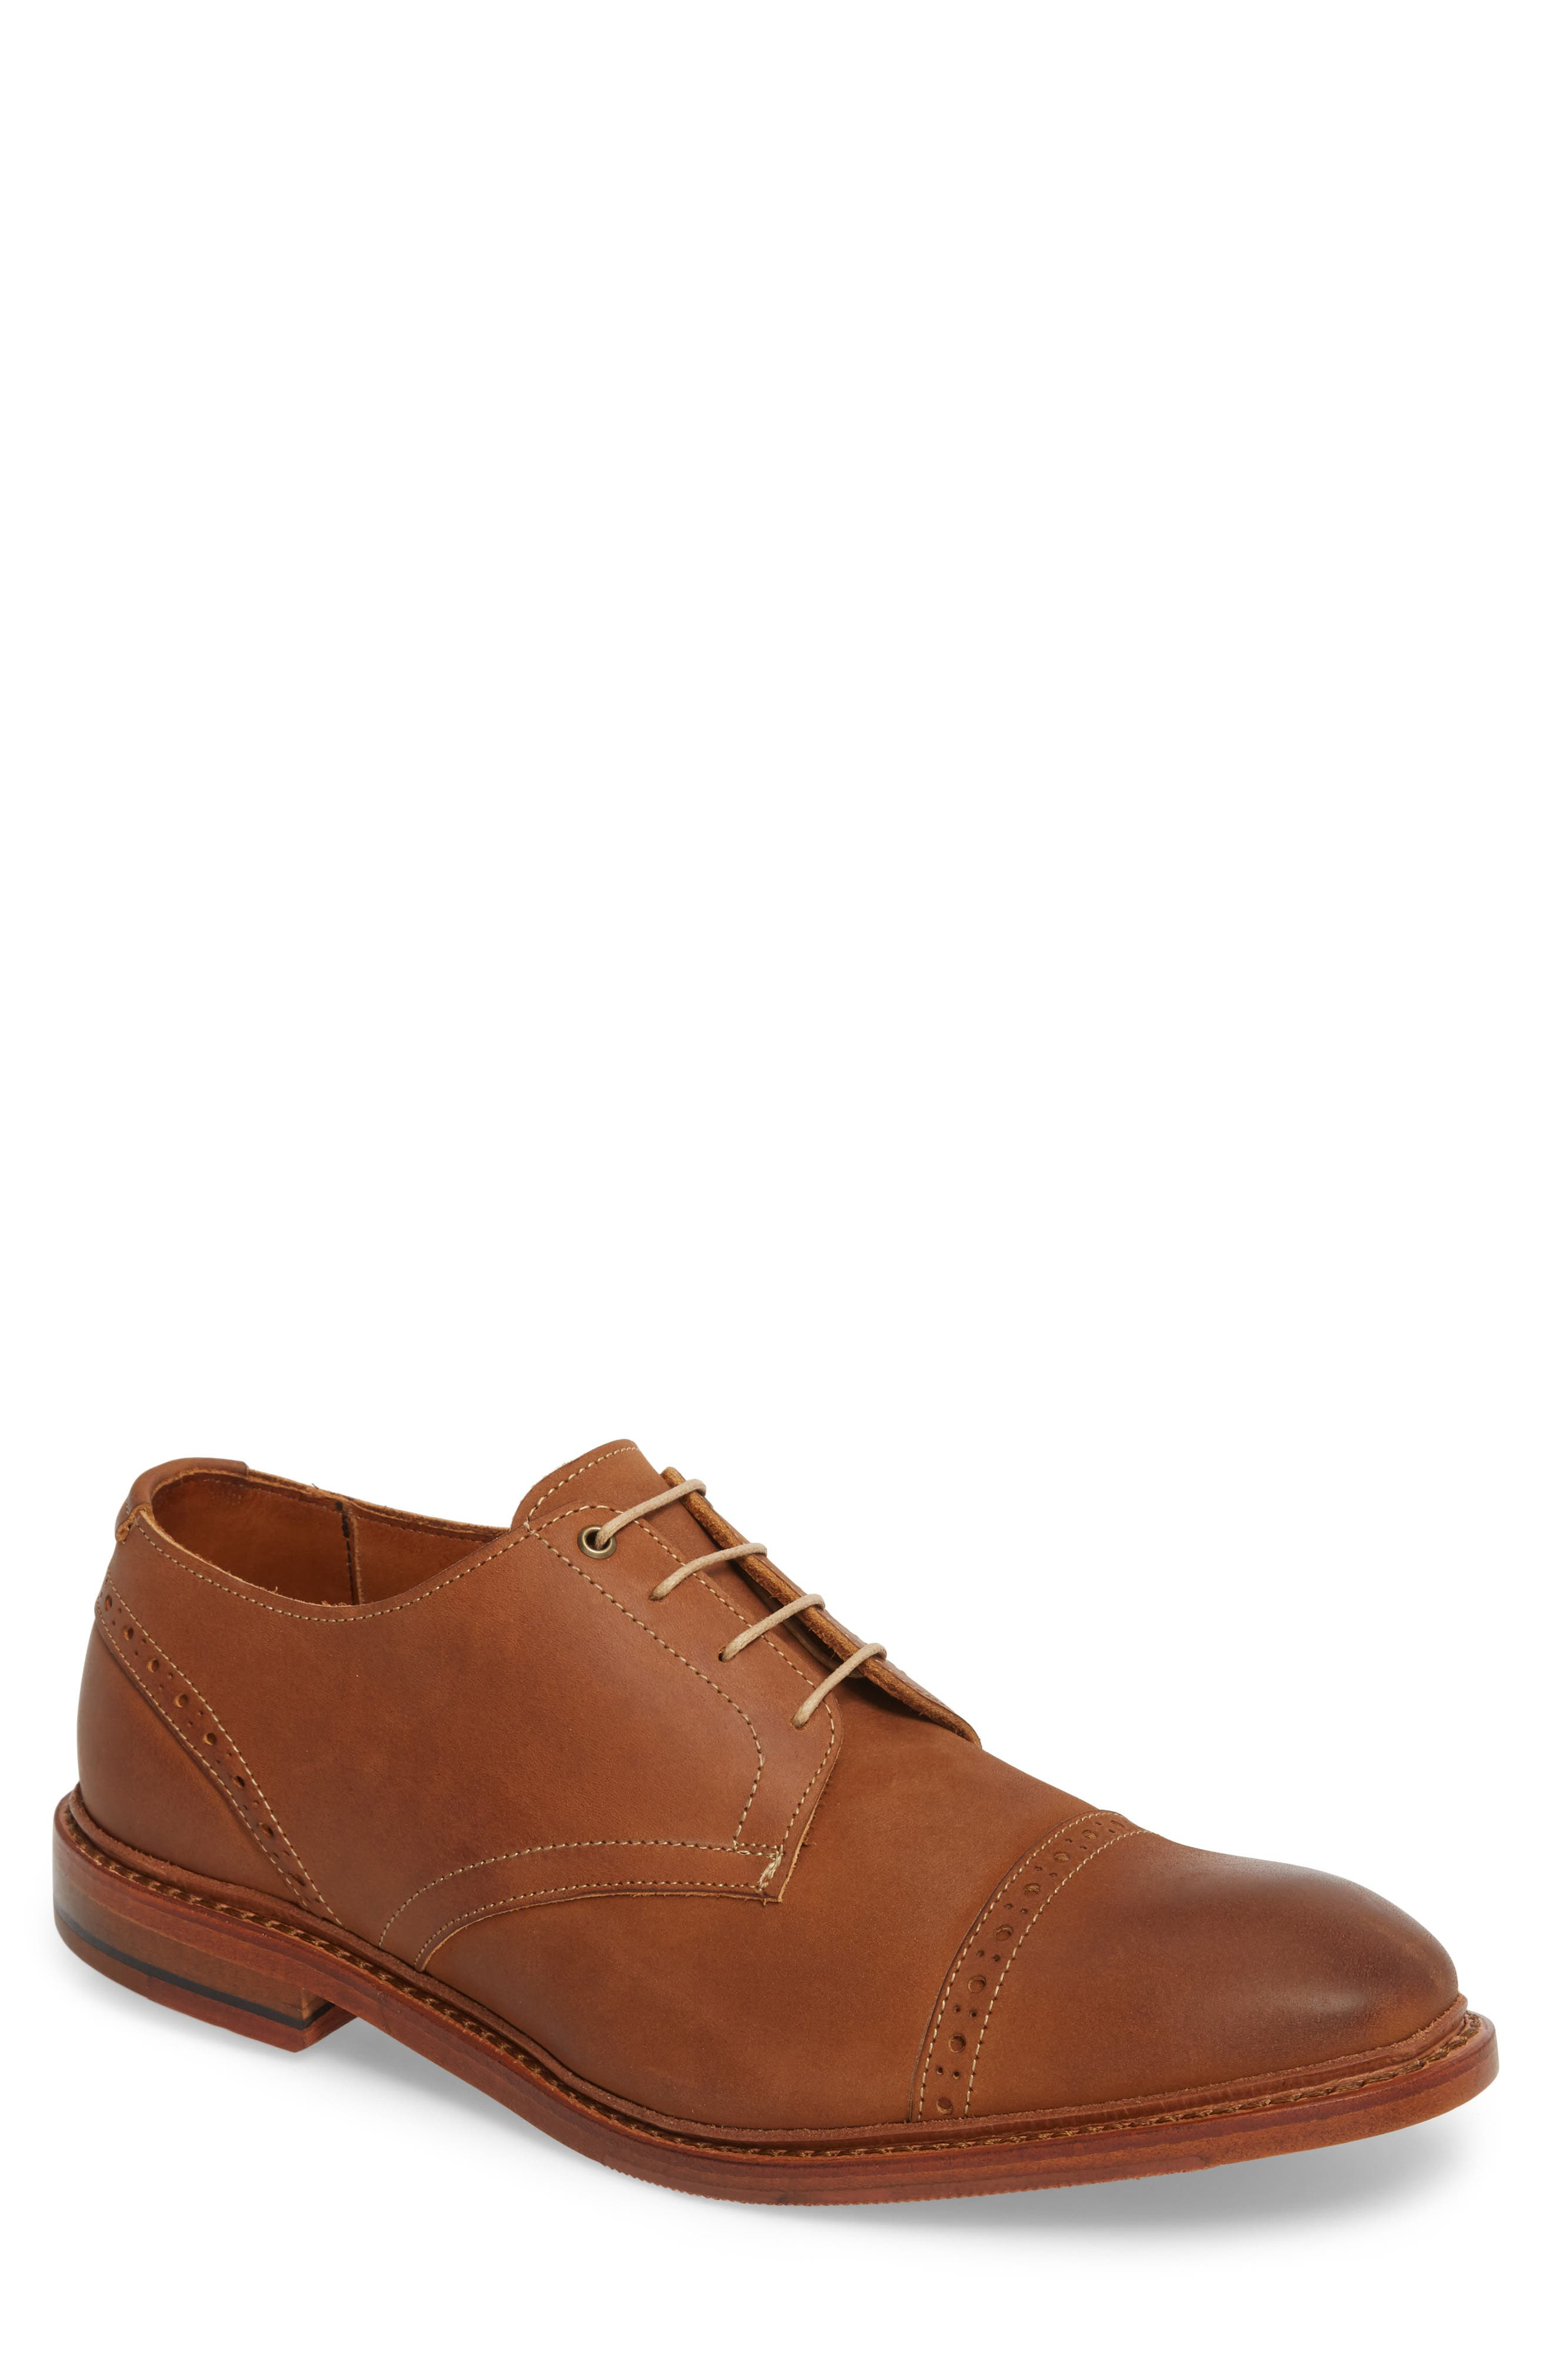 Kitsap Cap Toe Derby,                             Main thumbnail 1, color,                             TAN LEATHER